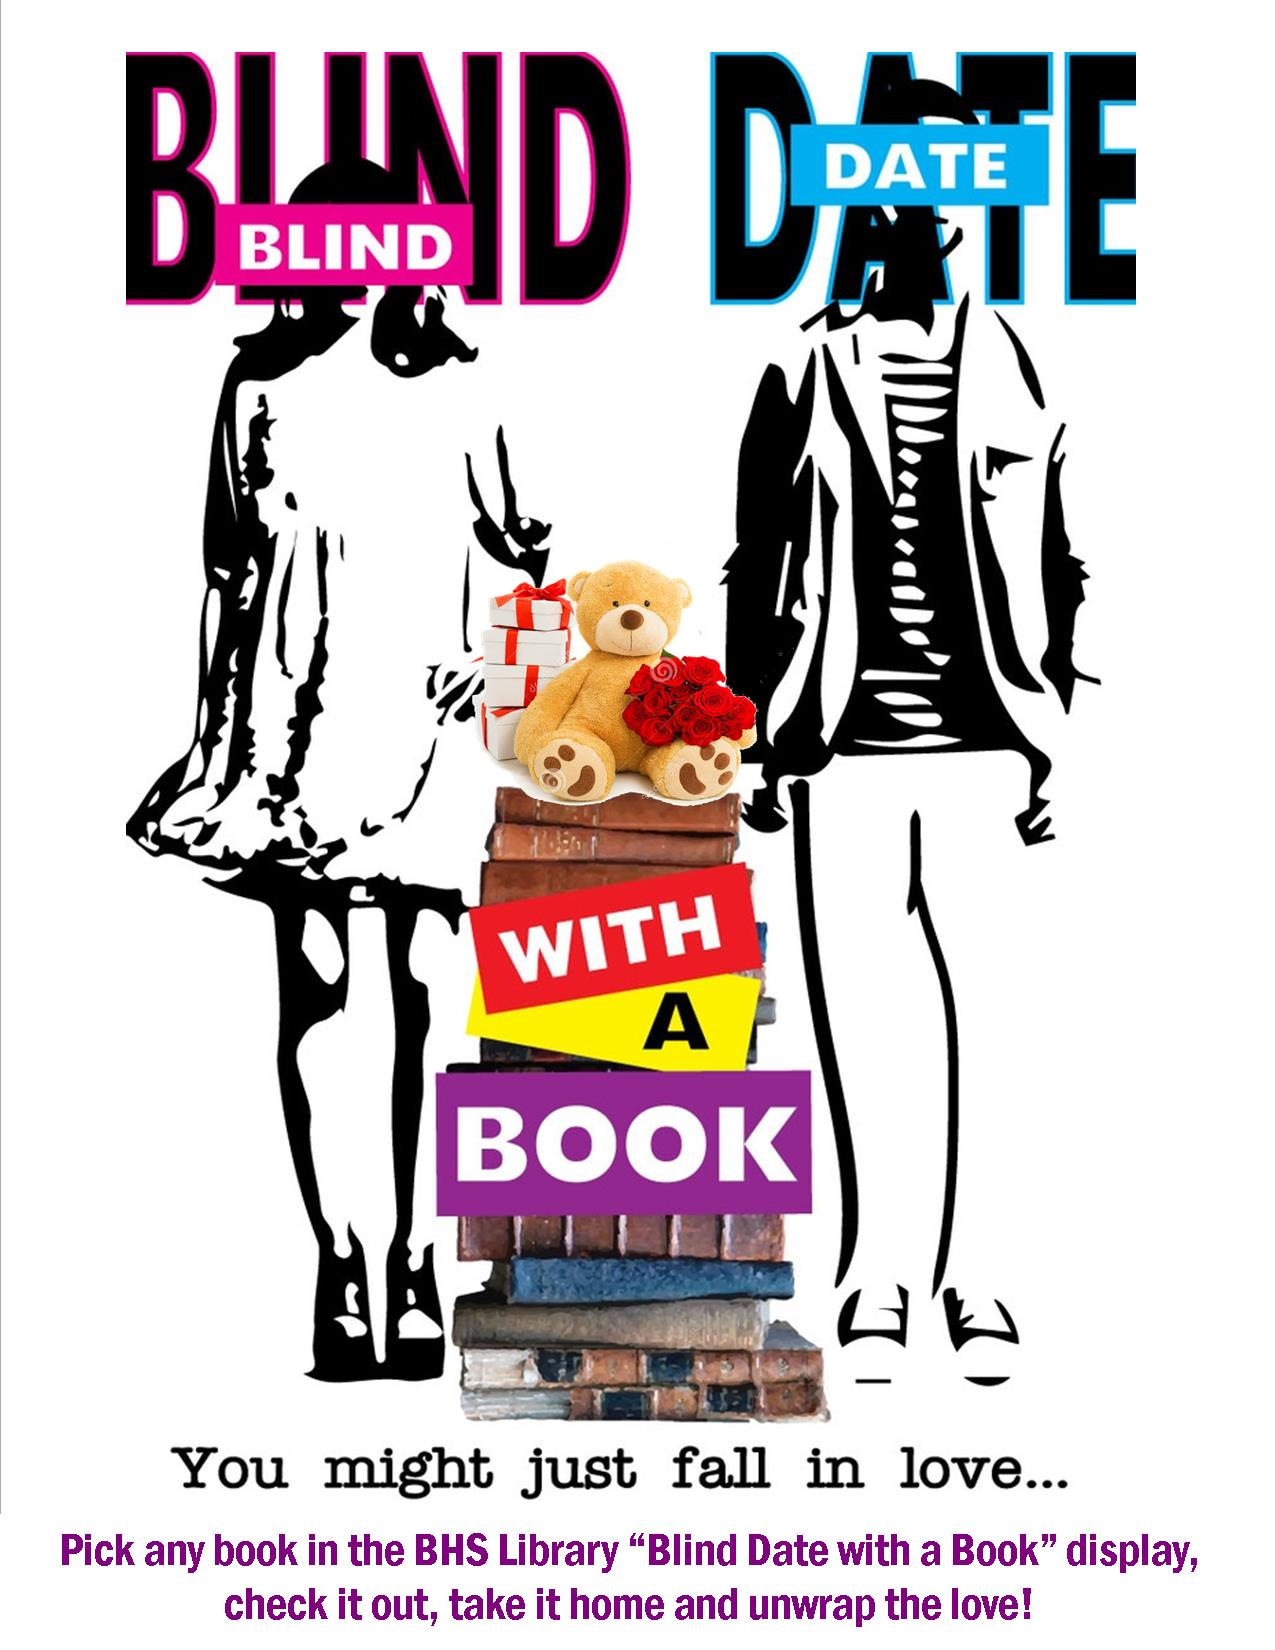 dating a blind man blog It happened to me: i fell in love with and married a blind man nervous for the upcoming date, i confided in a friend she asked me how he would know if i was attractive.